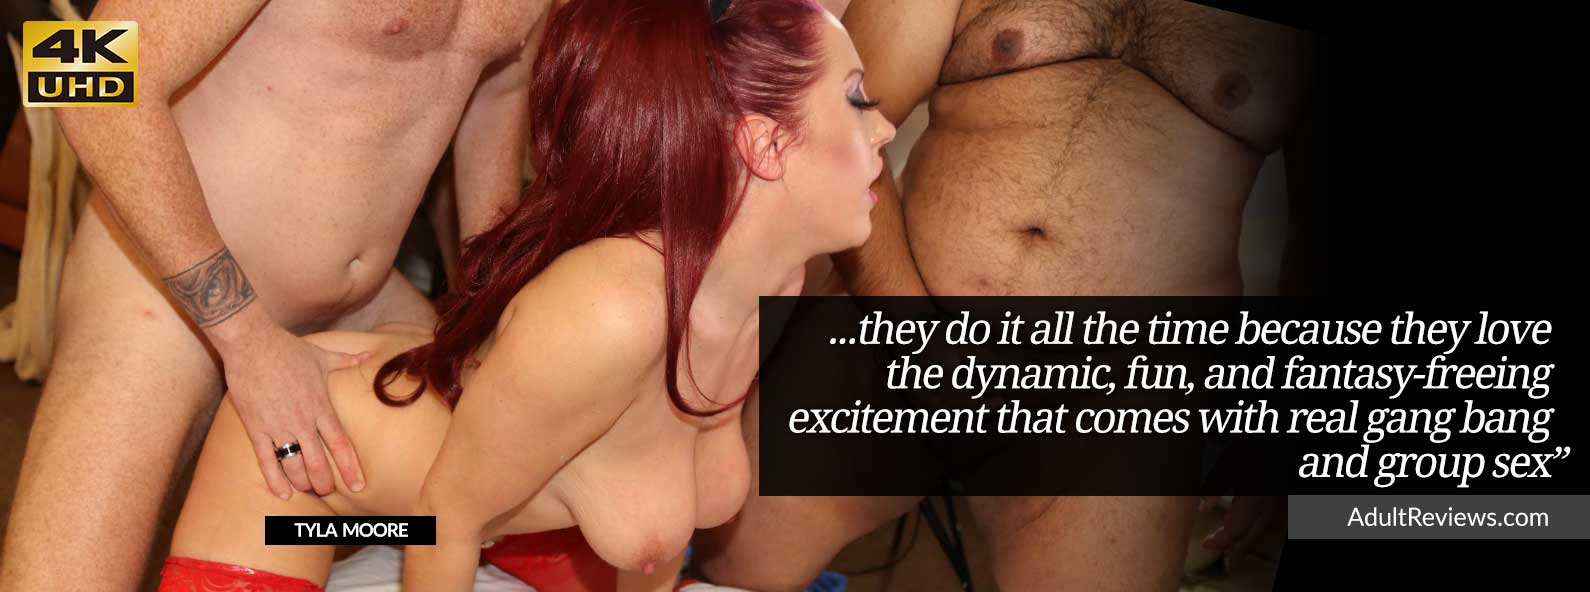 Stunning Tyla Moore enjoys many guys fucking her in a sex party